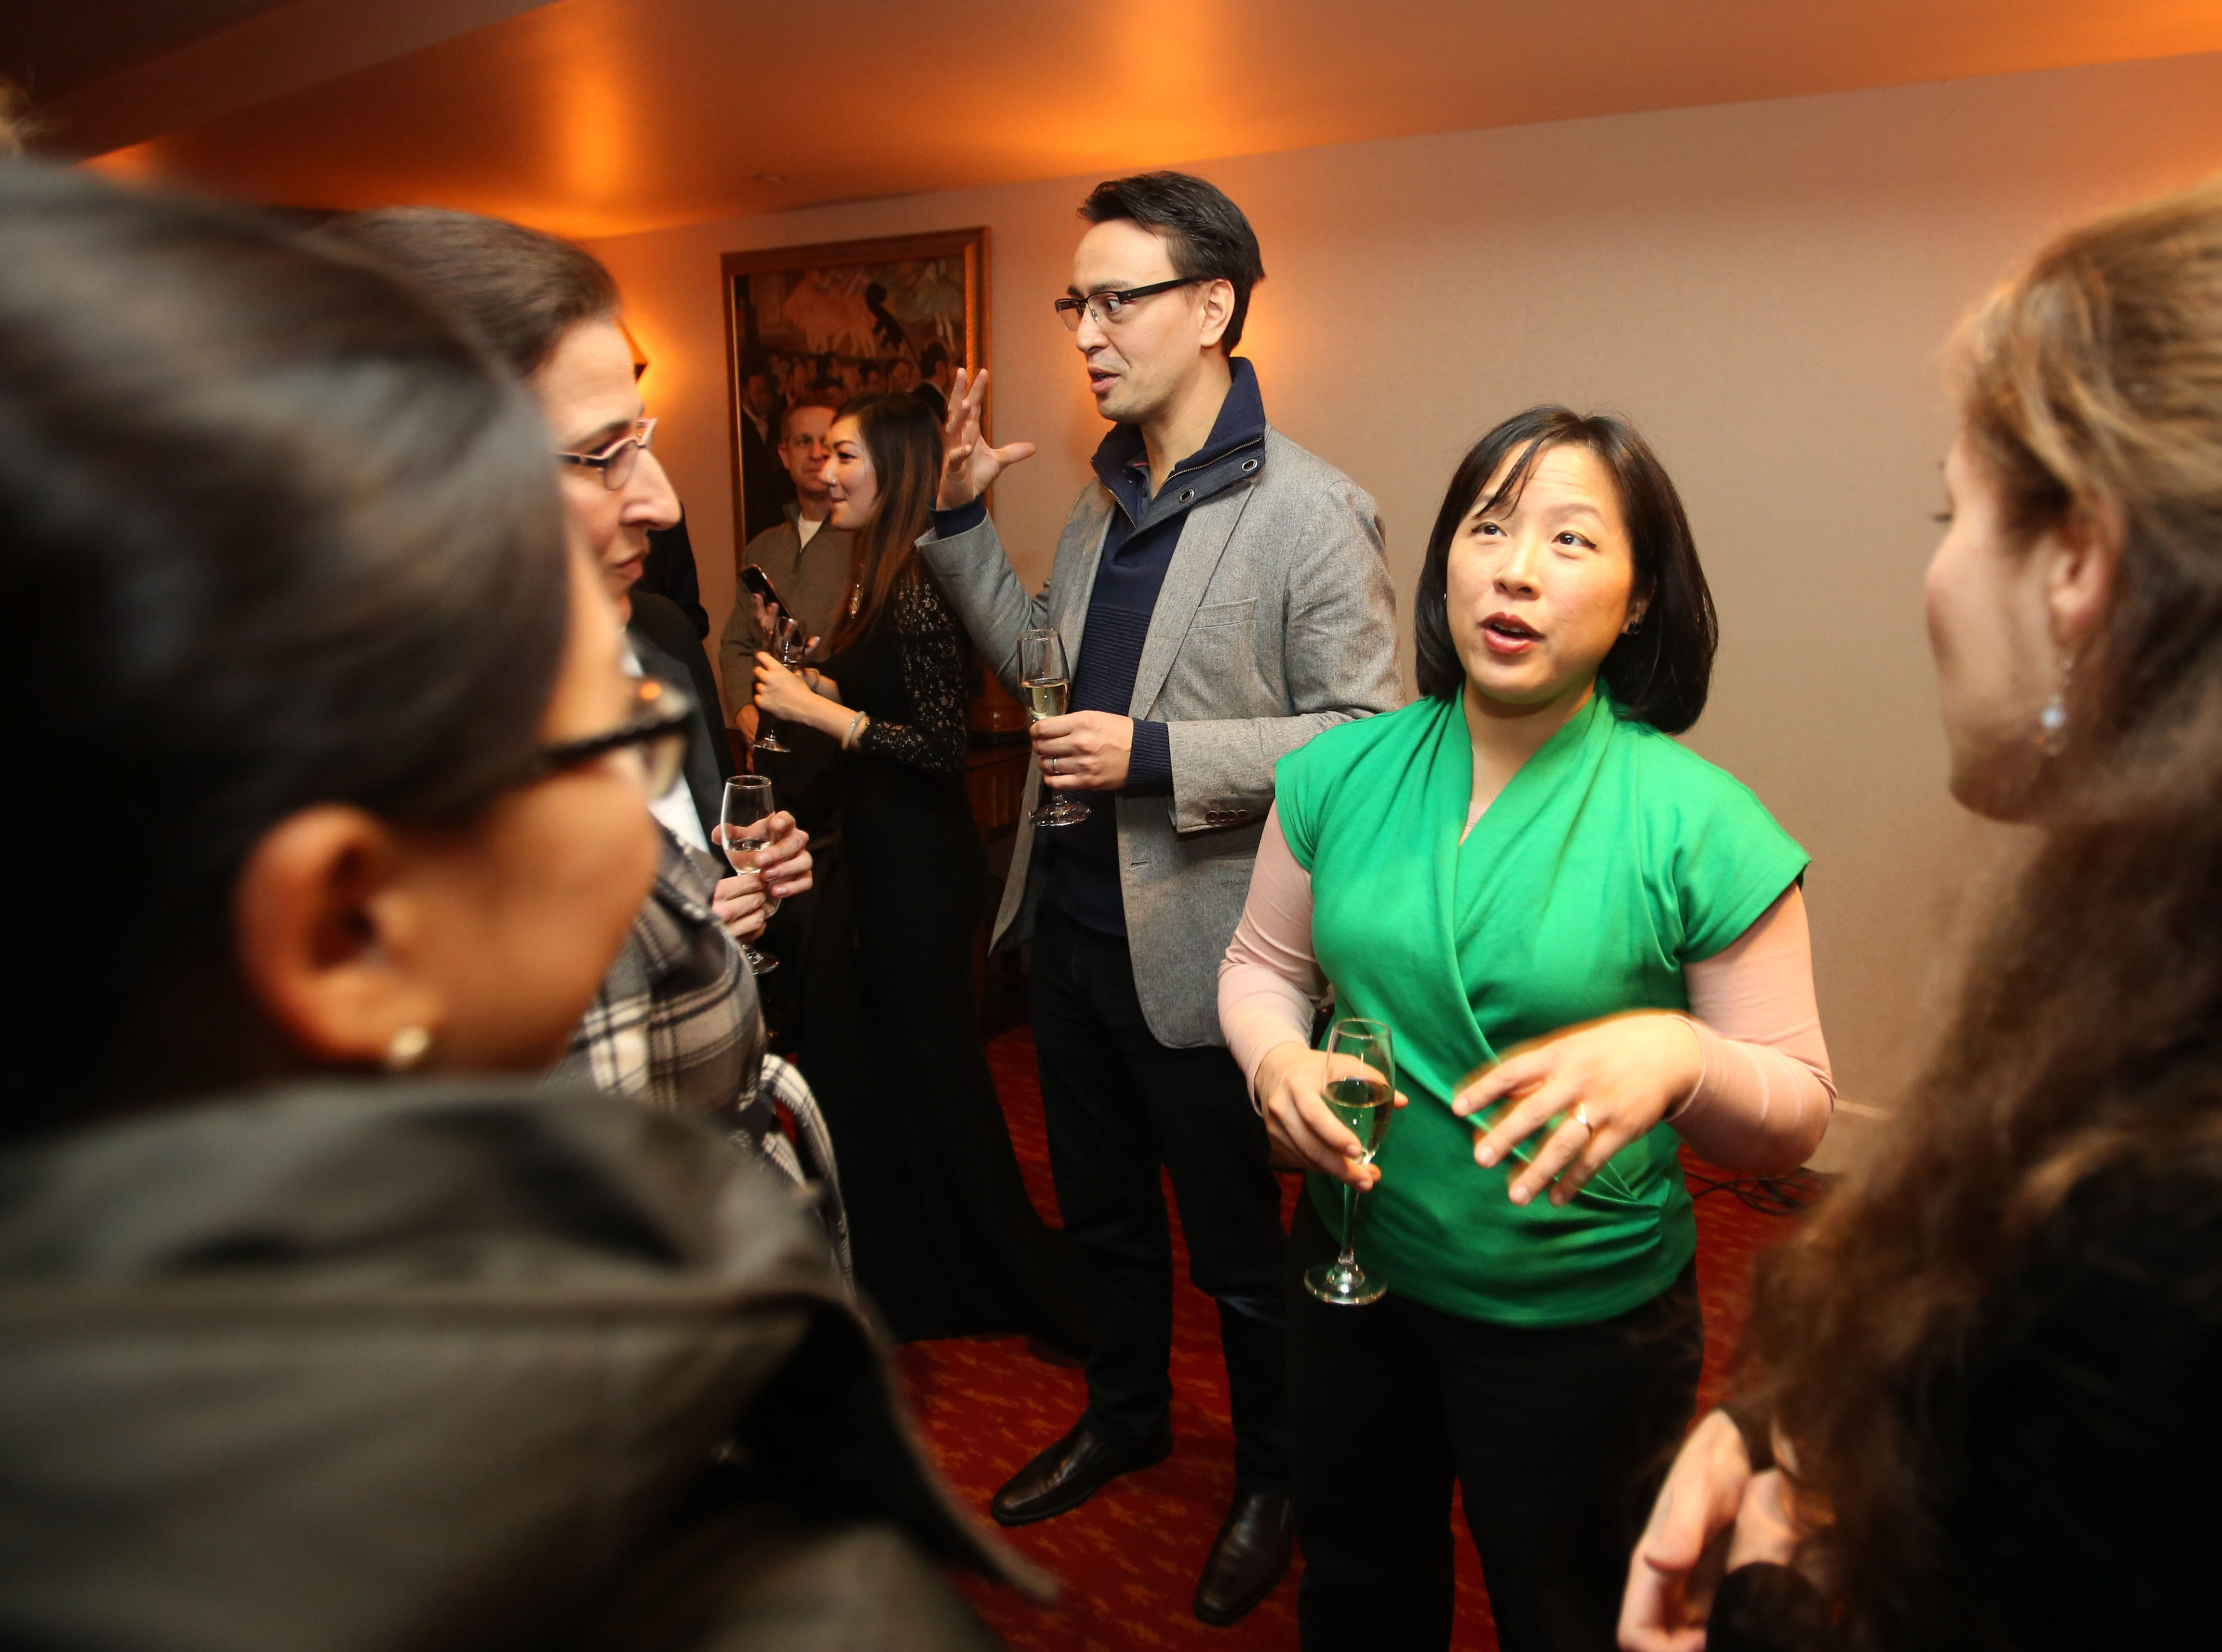 Ken-David Masur (back center) and spouse Melinda Lee Masur (in green) greet Milwaukee Symphony musicians during an event introducing him as the orchestra's next music director.